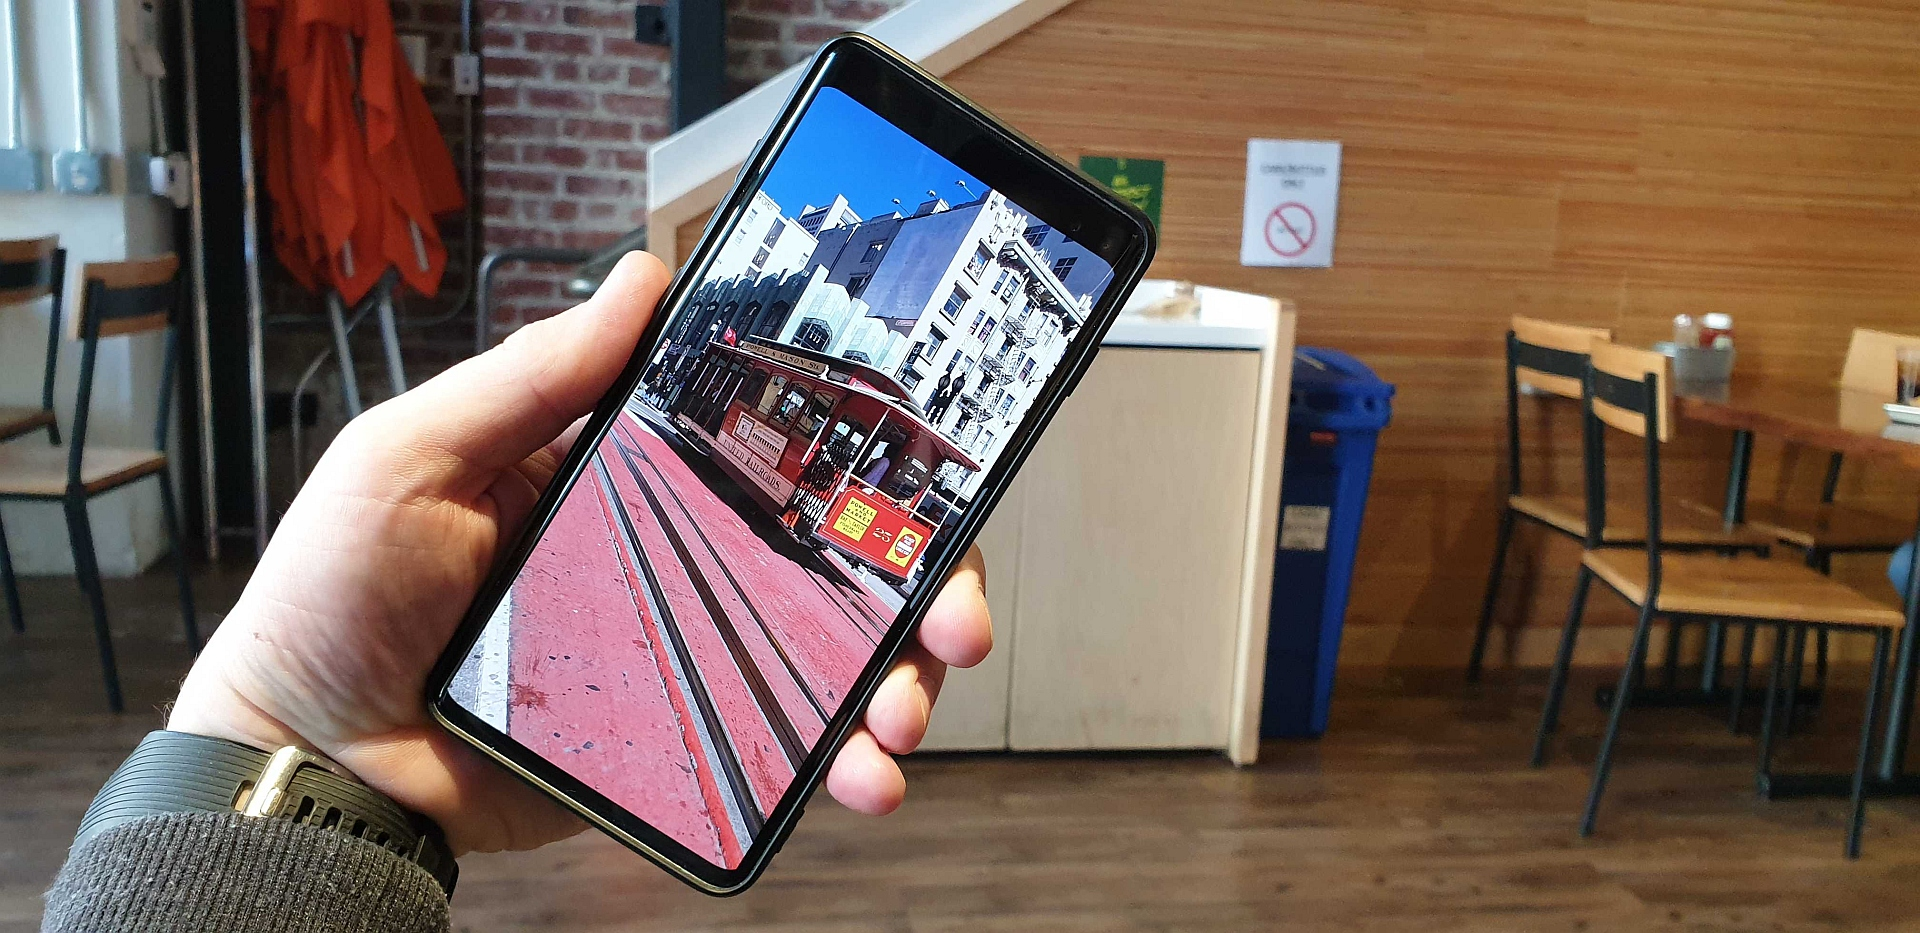 Yes, the Galaxy S10 has an option to hide the front camera cutout